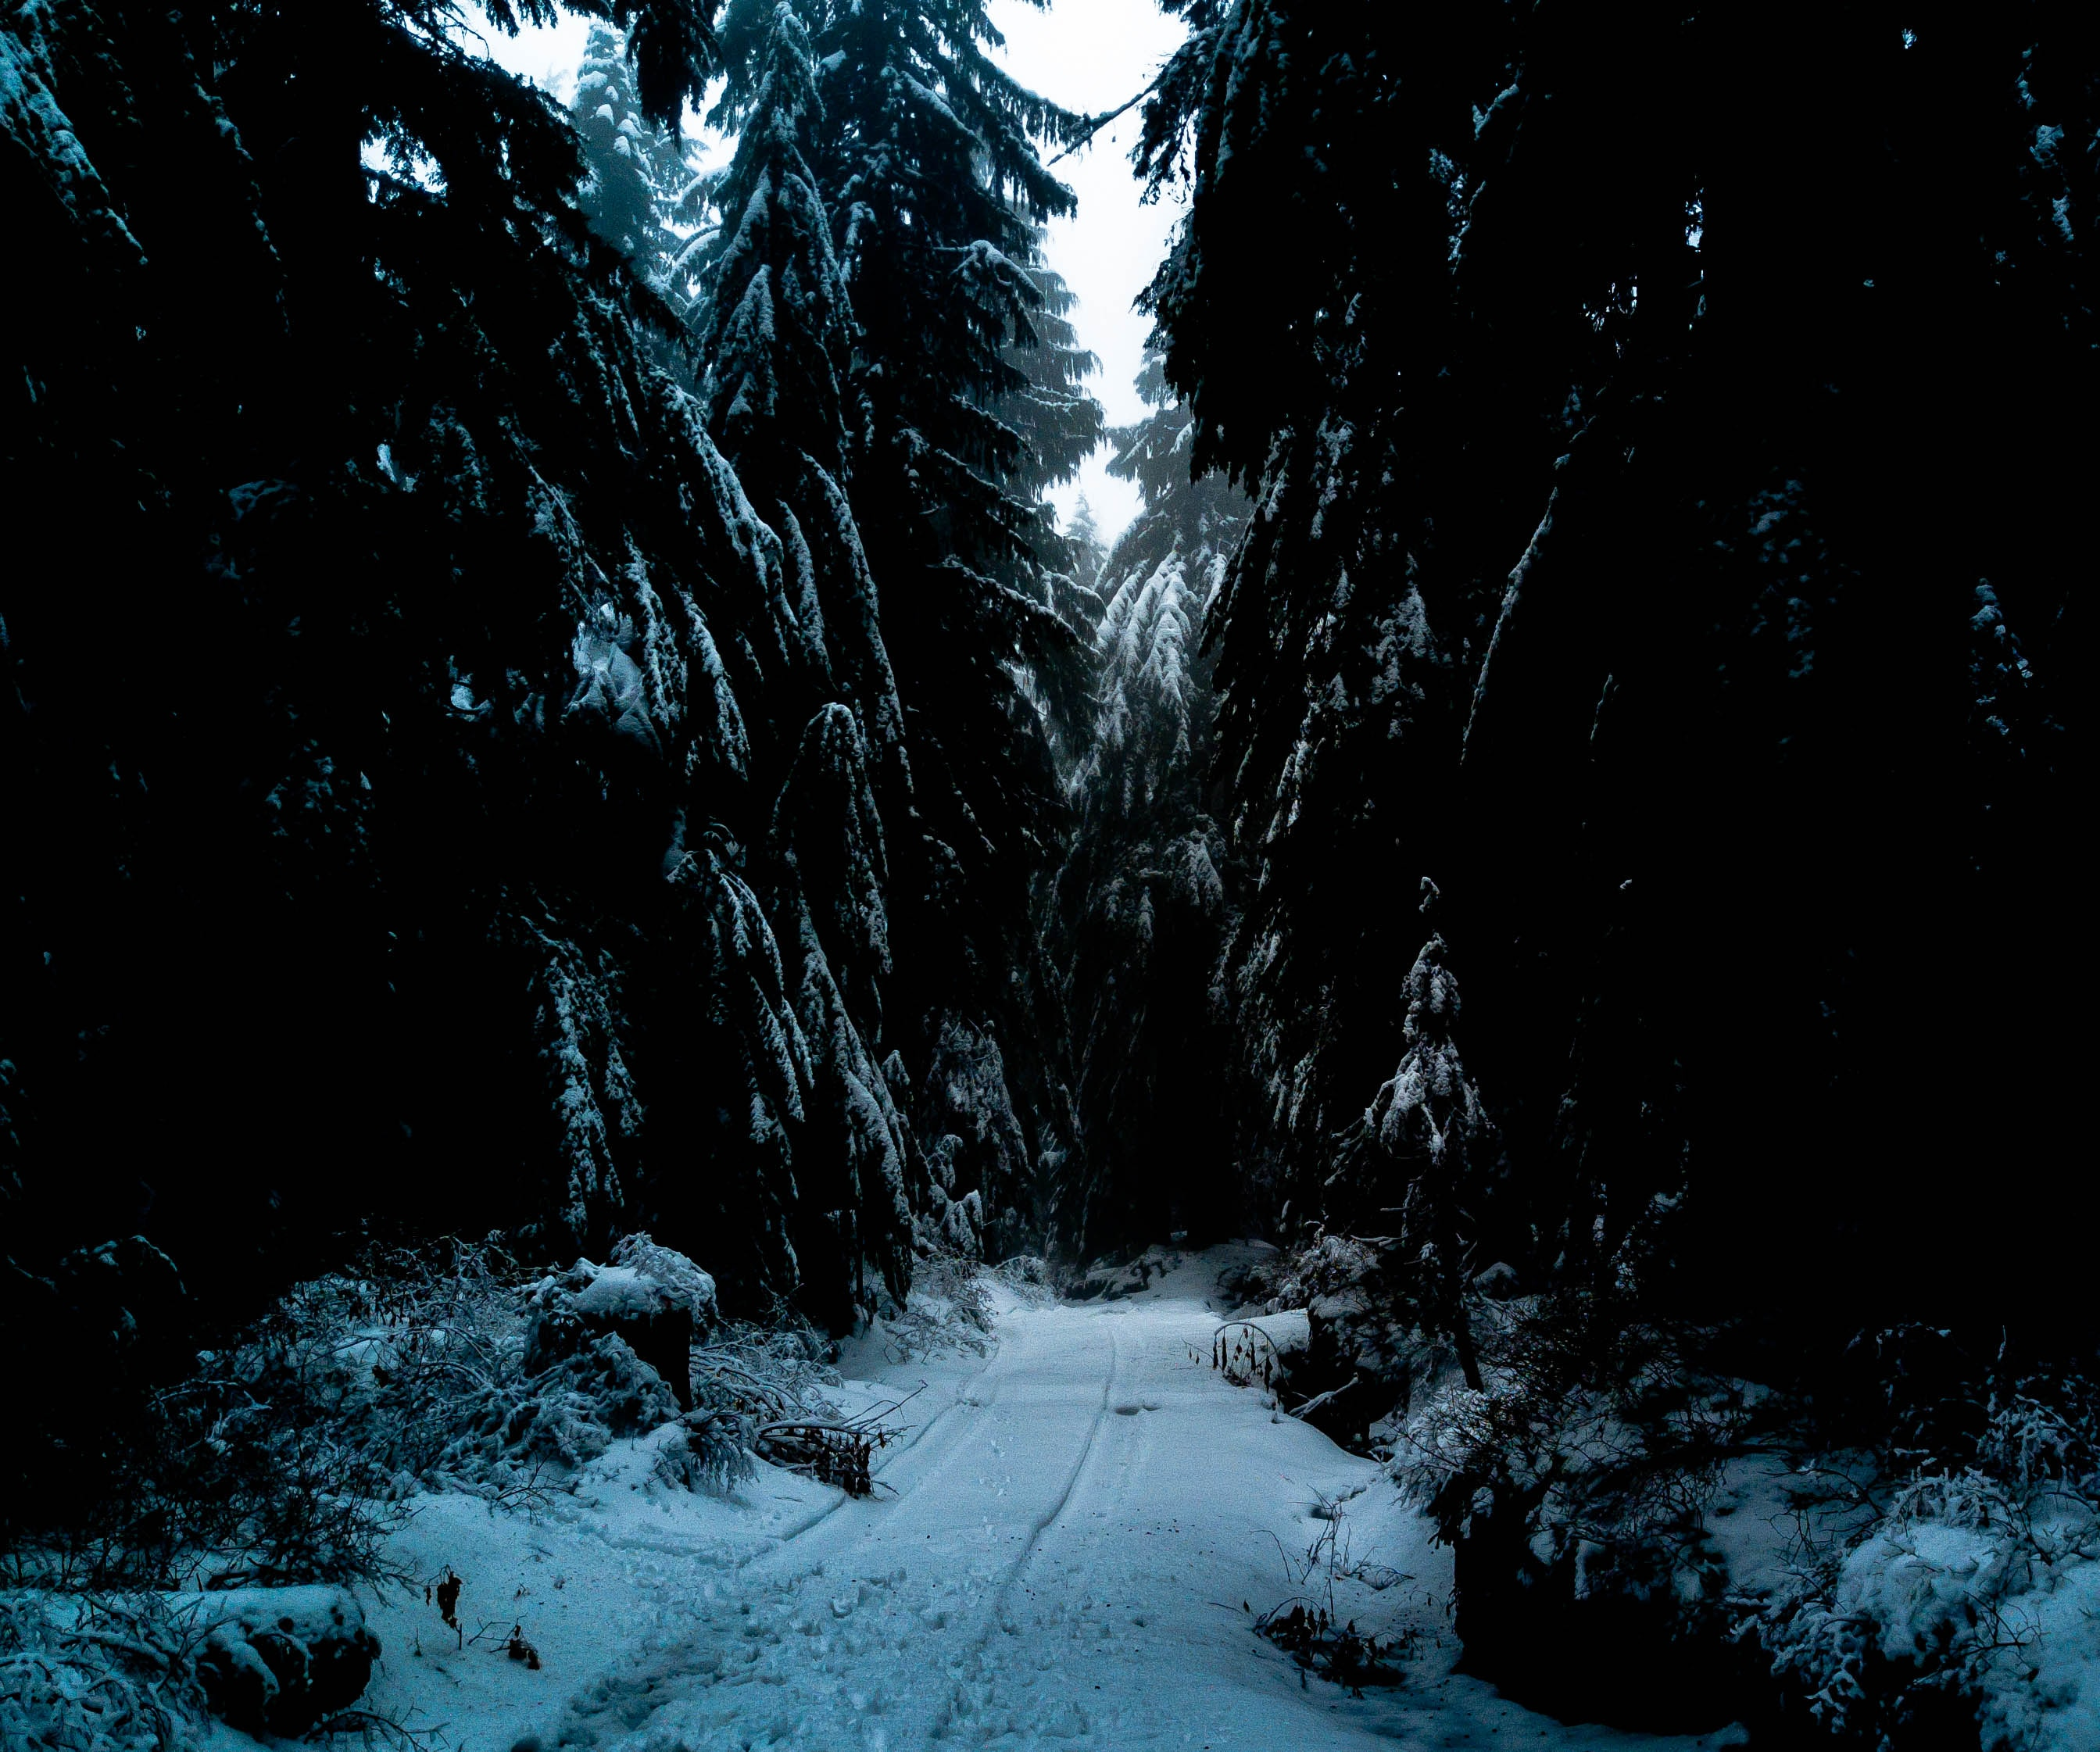 snow-covered road between inline evergreen trees